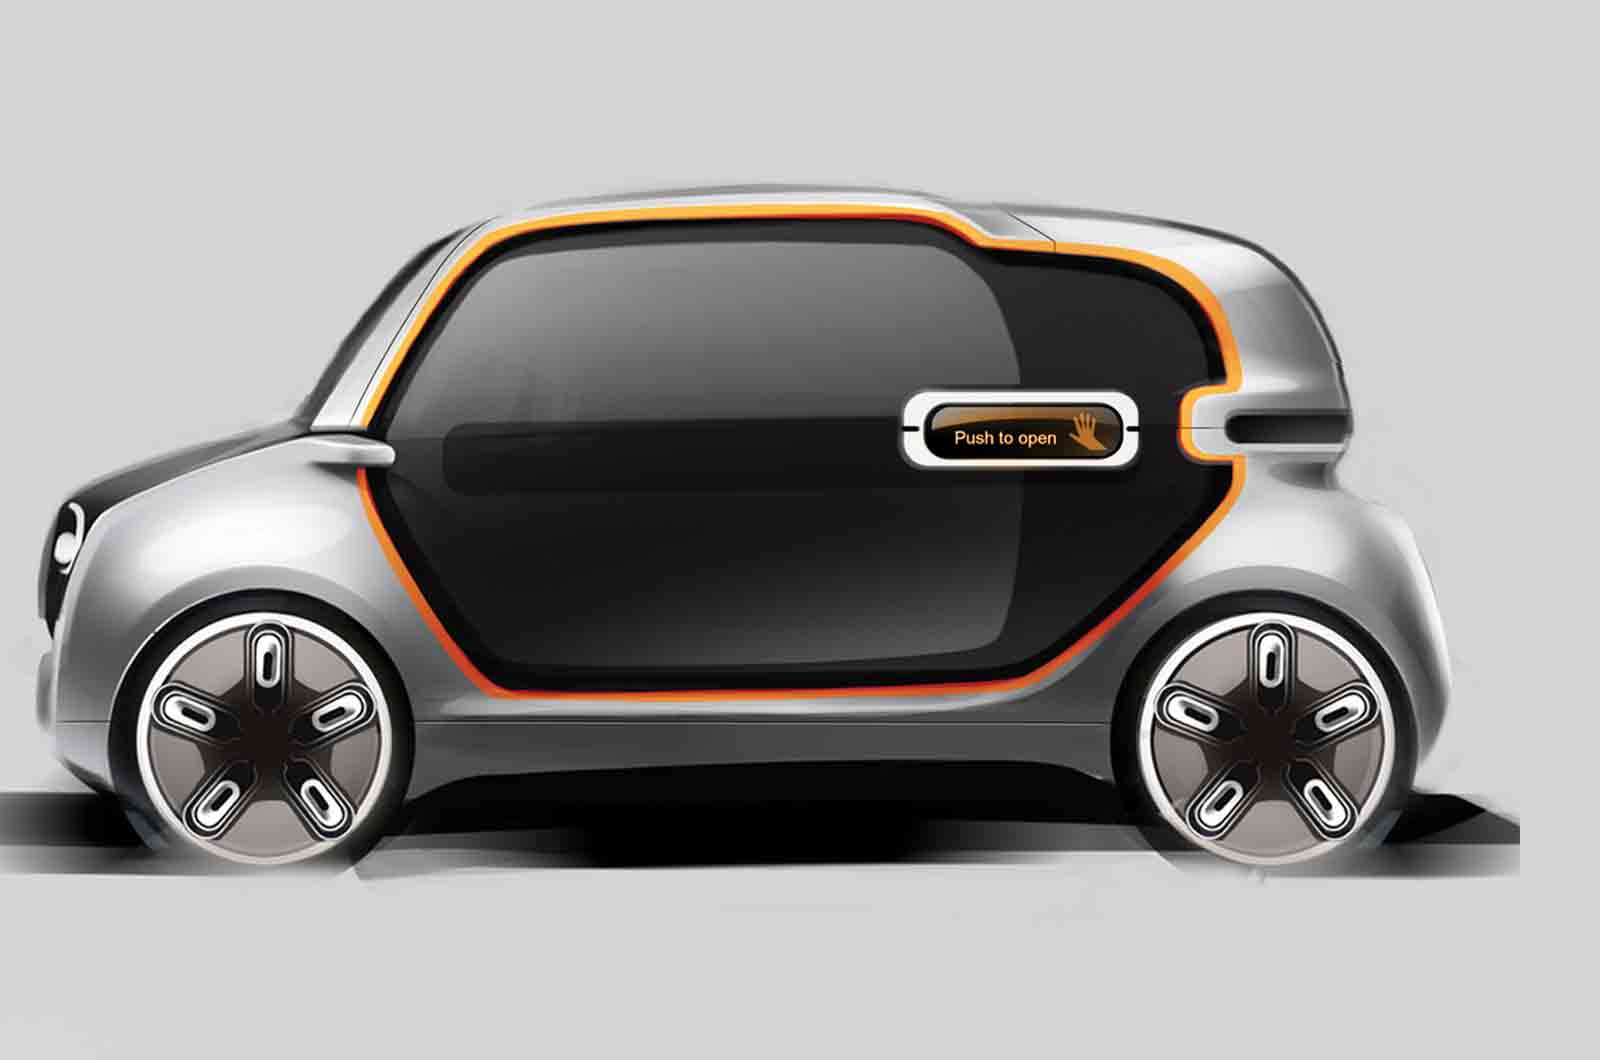 Motorparks | Fiat | New FiatFuture and Concept Cars - Fiat